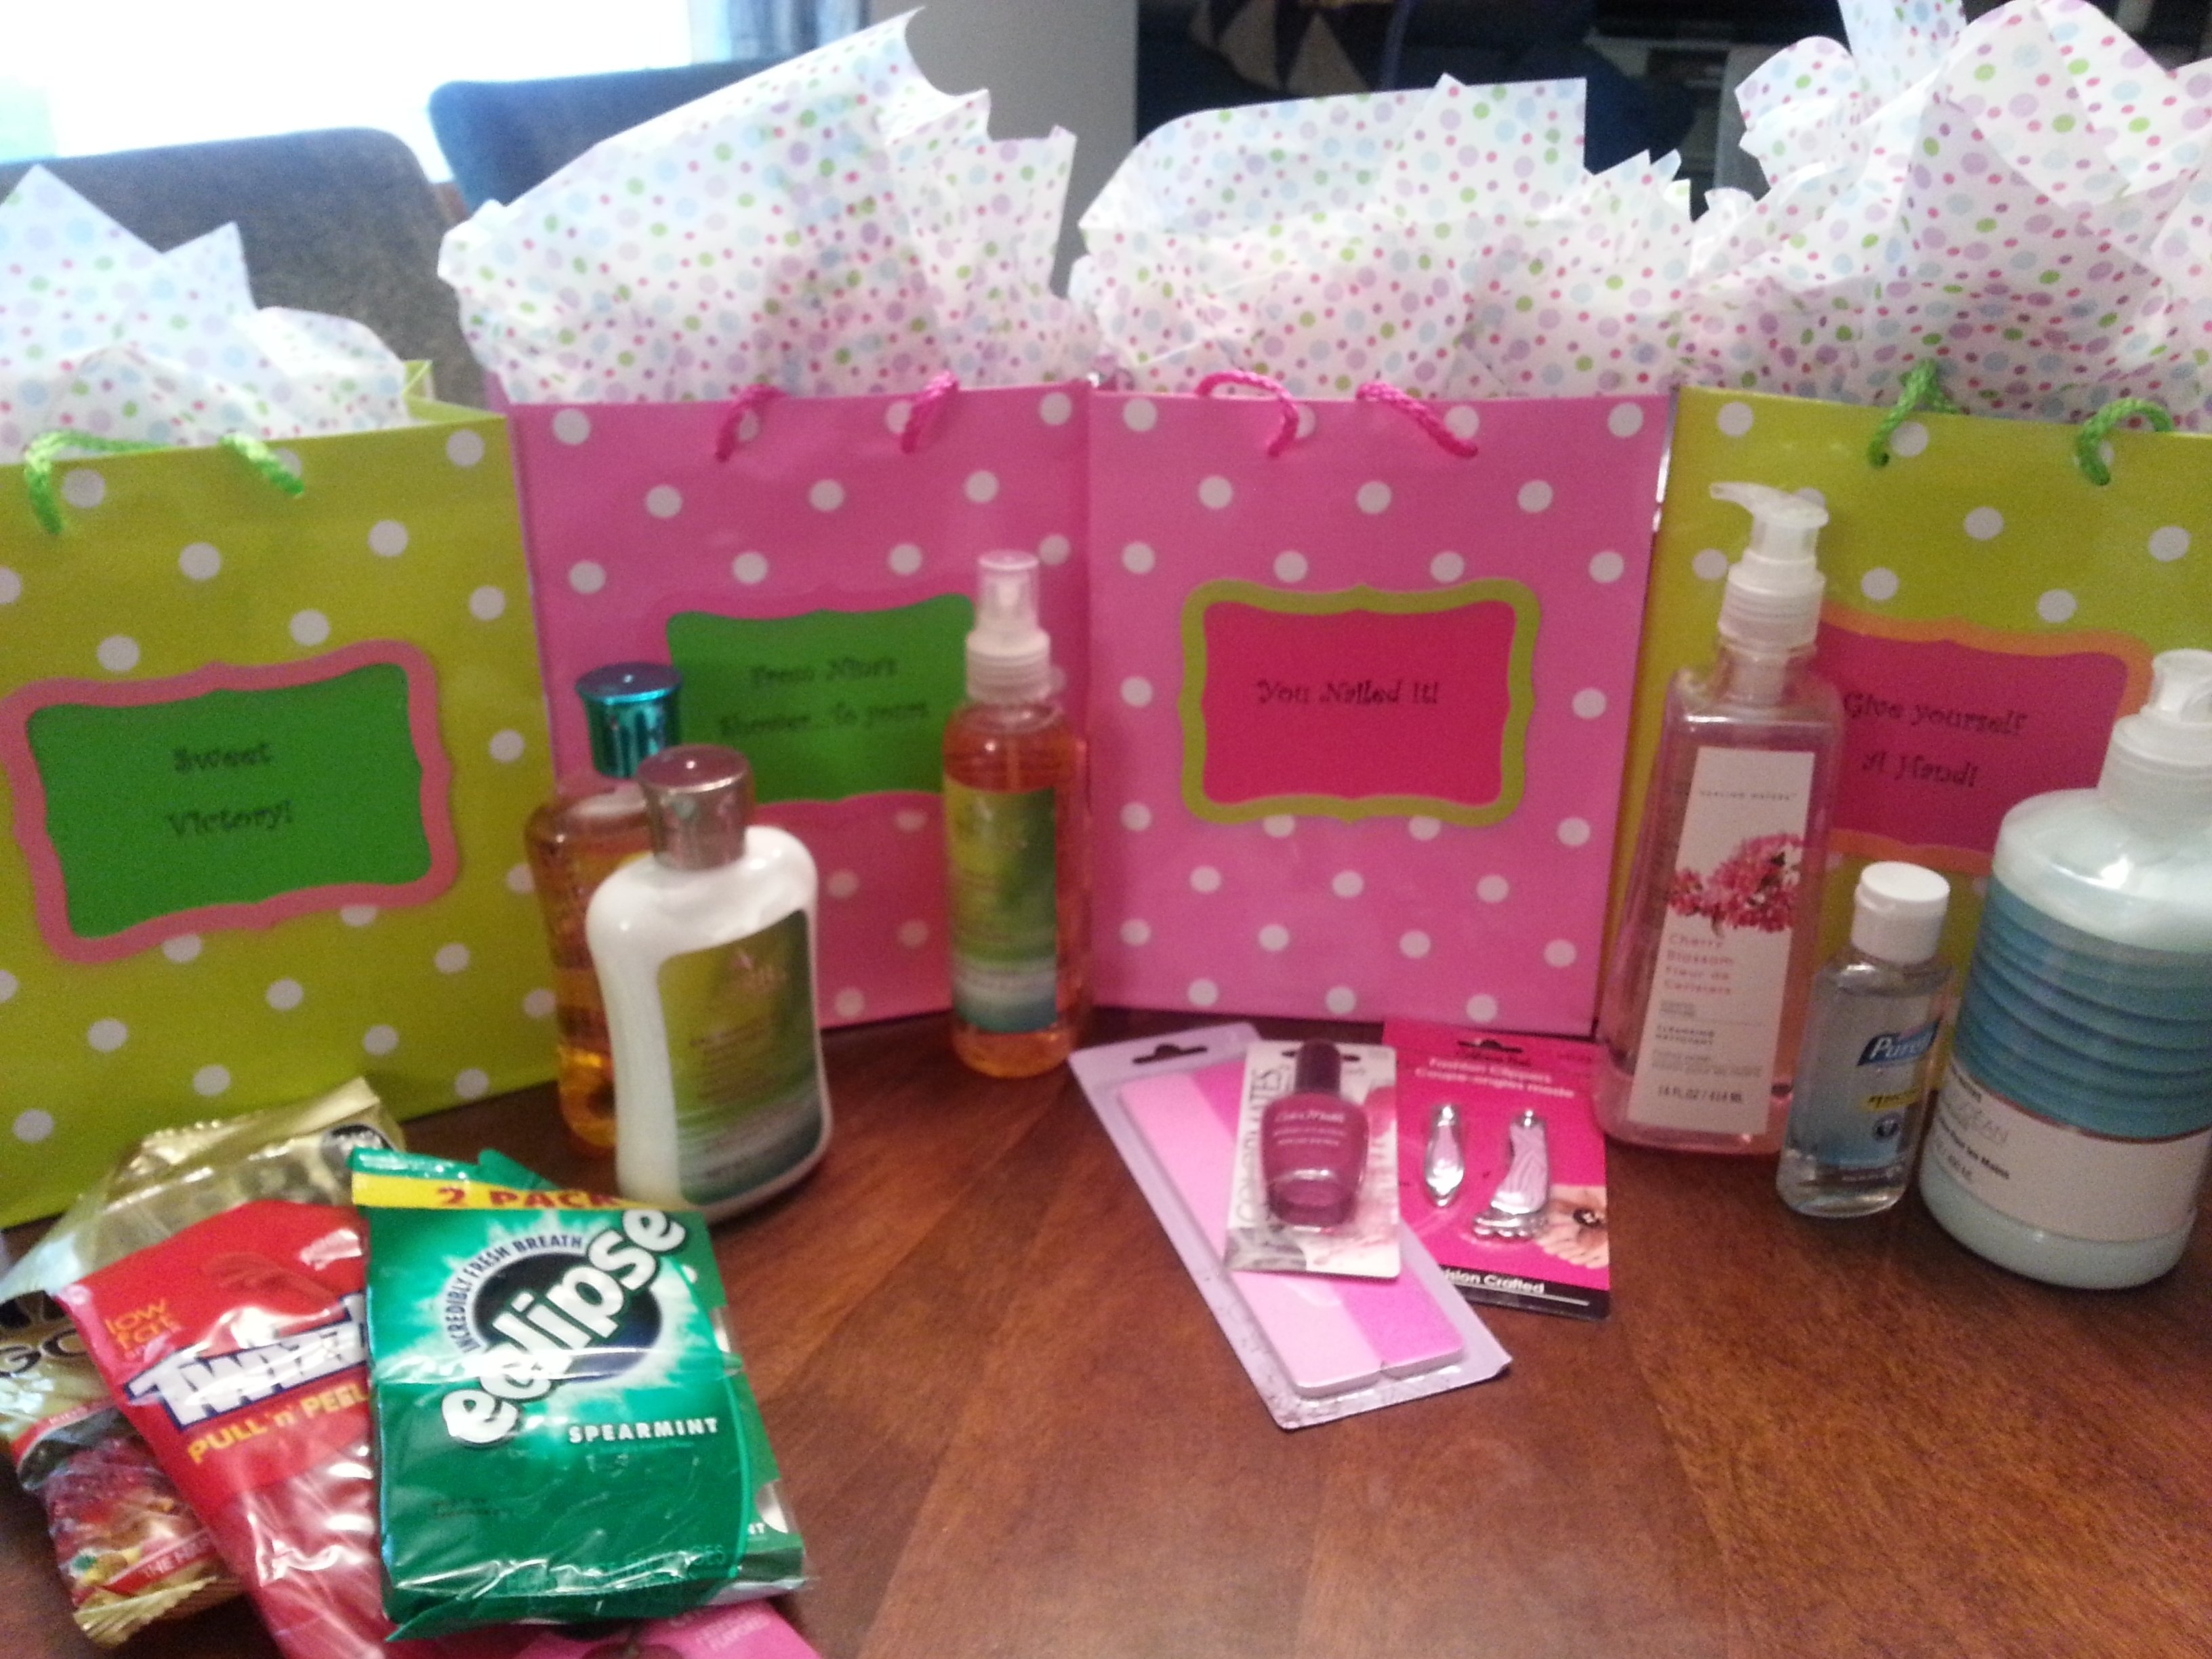 10 Pretty Ideas For Baby Shower Prizes babyhower gift prizes ideas prize for coed guys basket party 2020